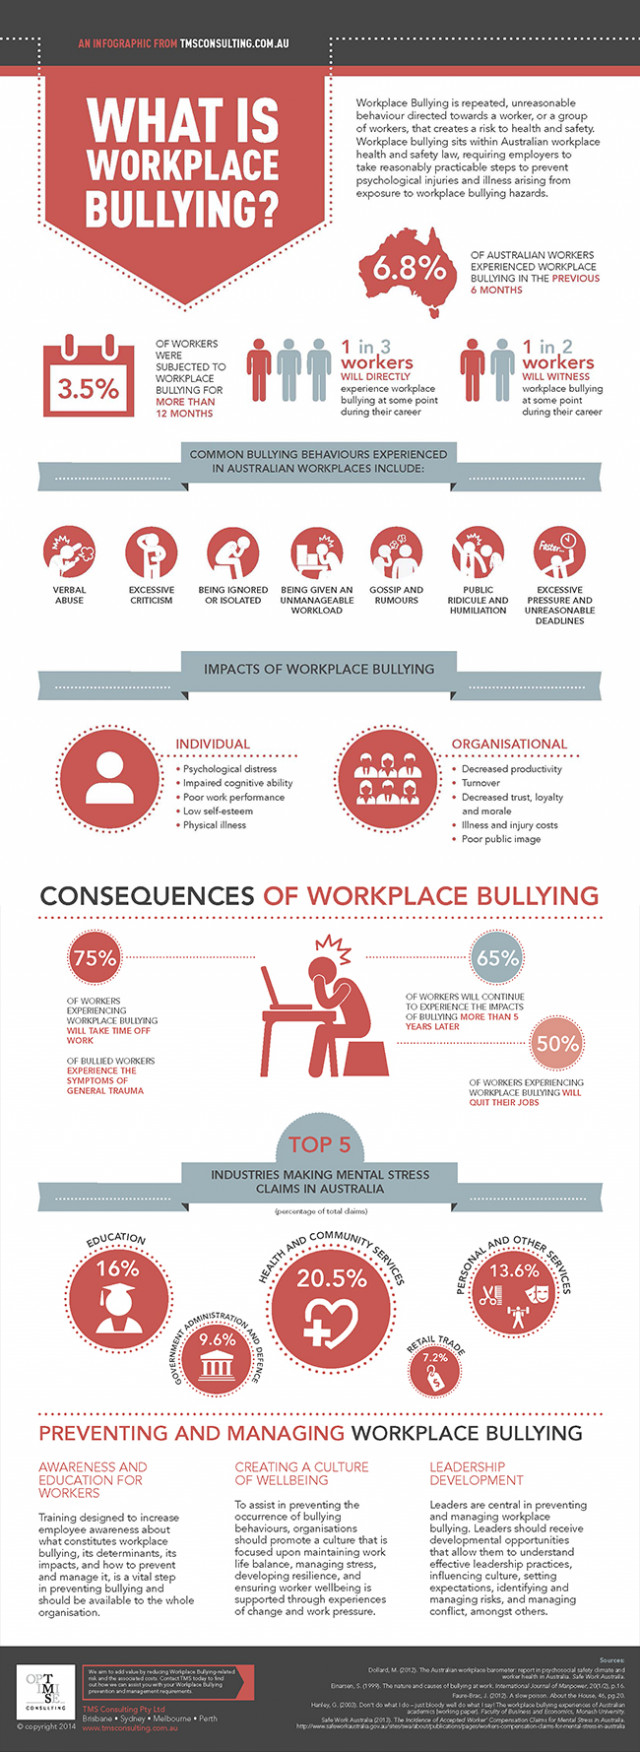 What is Workplace Bullying?